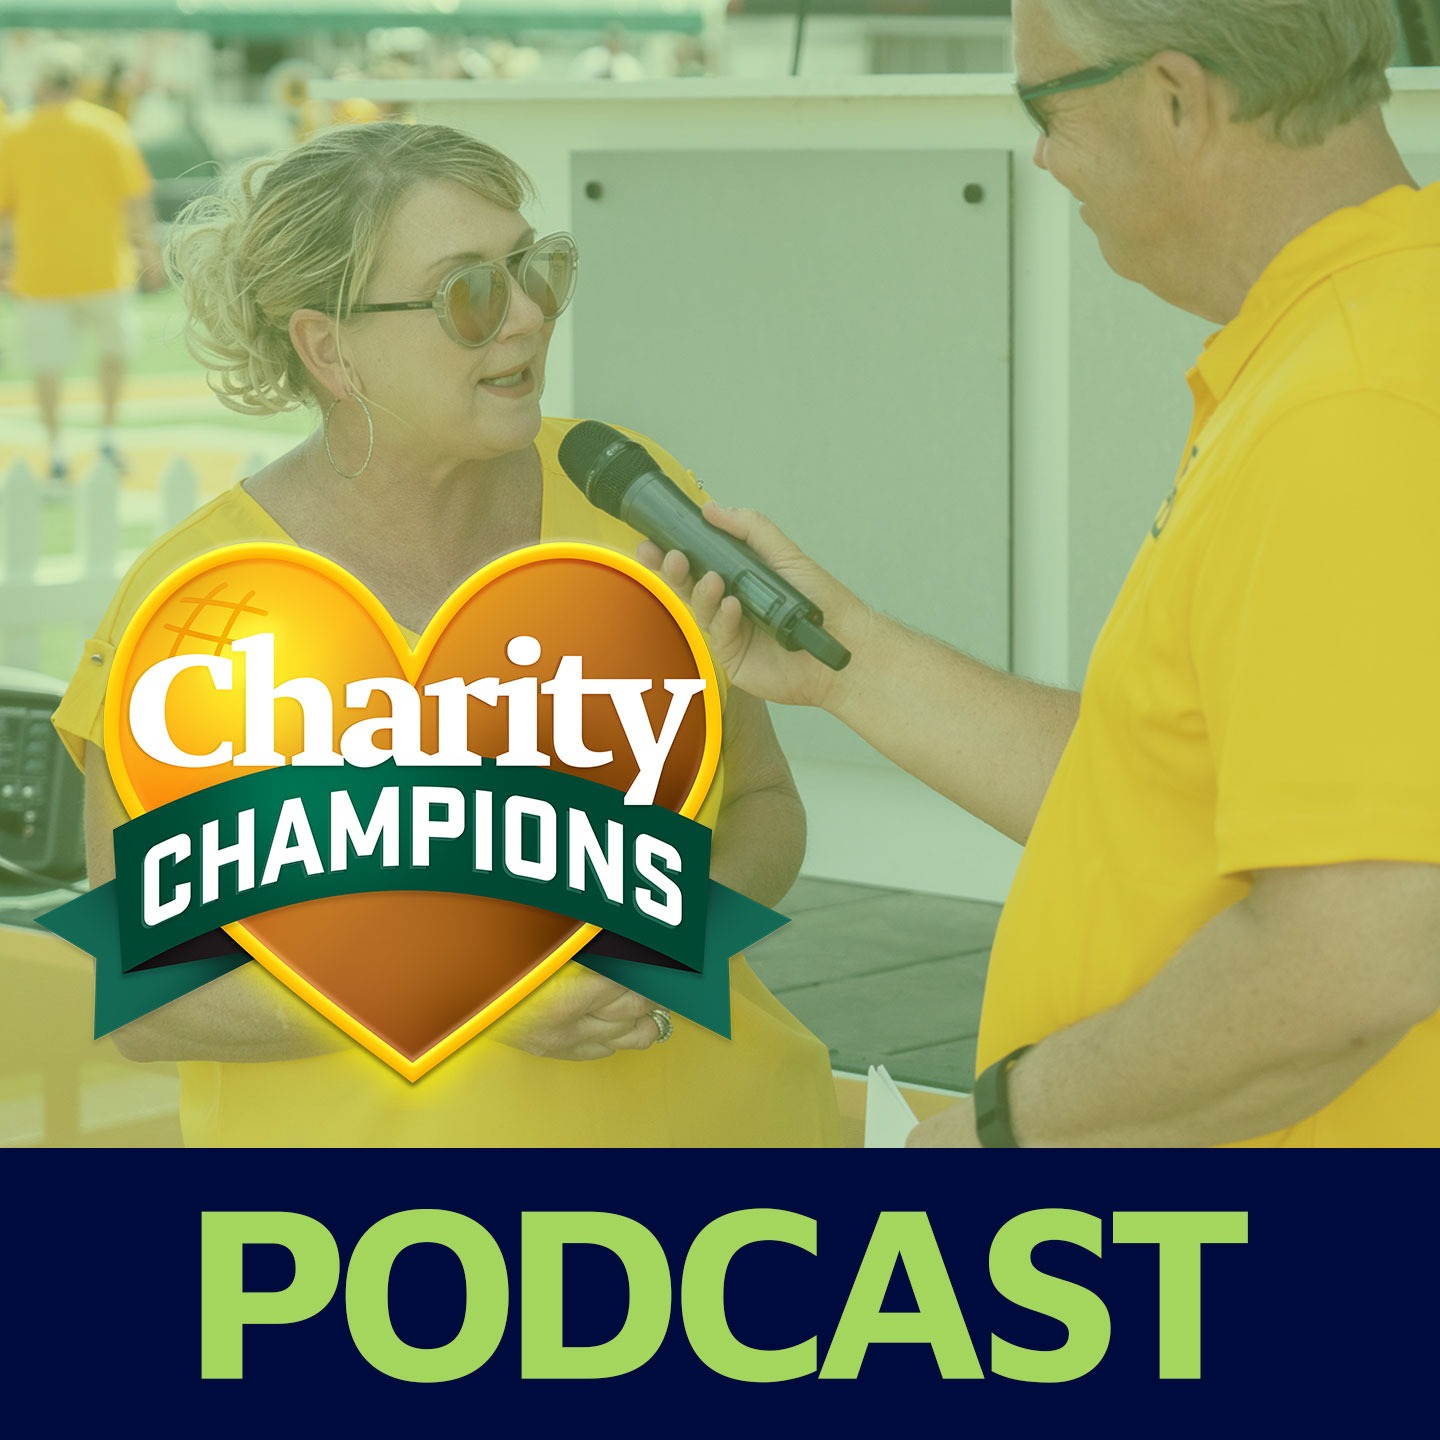 Charity Champions Podcast